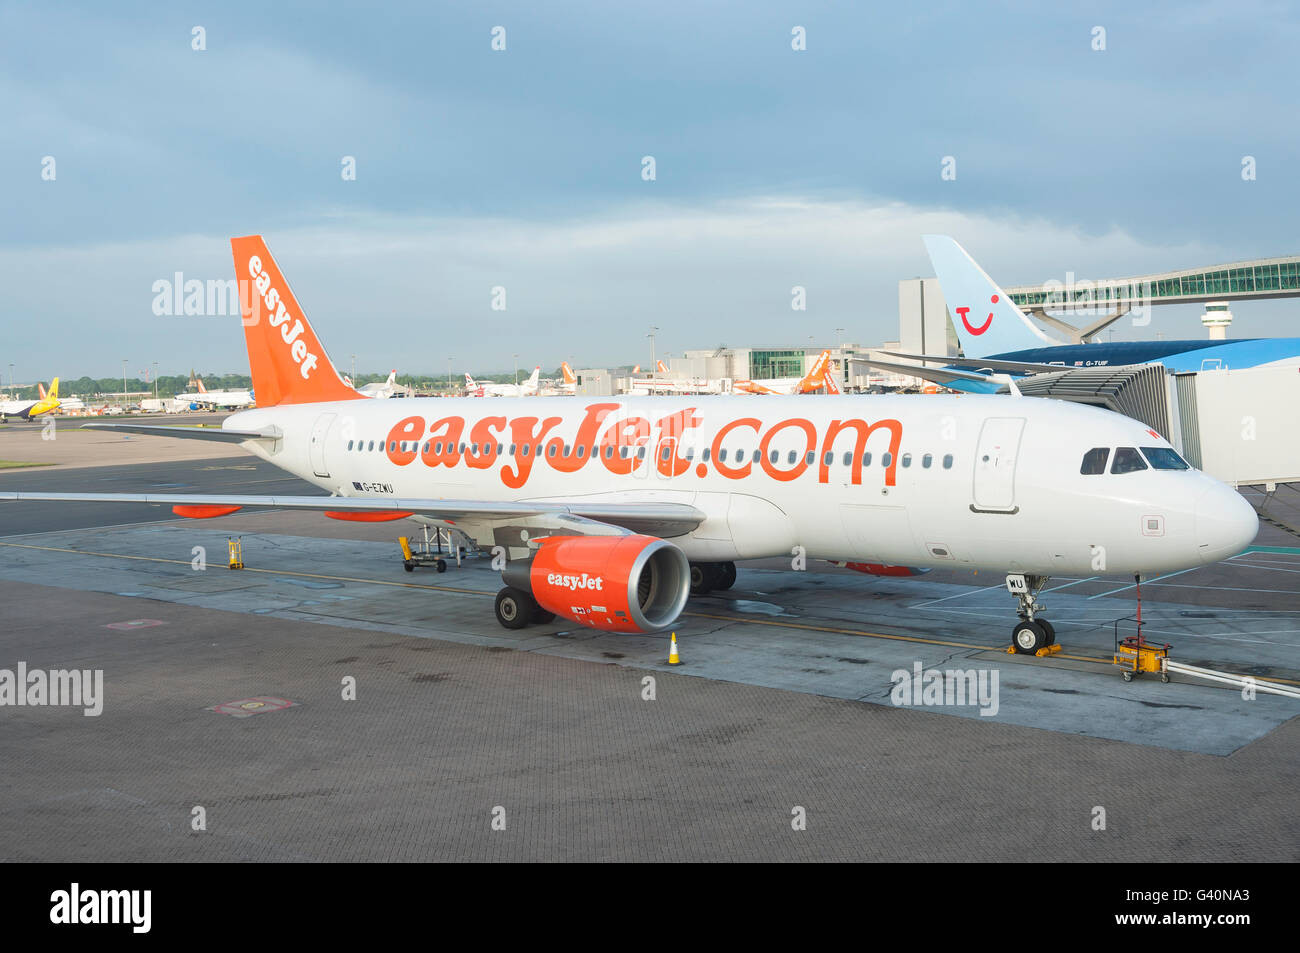 Easyjet Airbus A320 aircraft at gate, North Terminal, London Gatwick Airport, Crawley, West Sussex, England, United - Stock Image